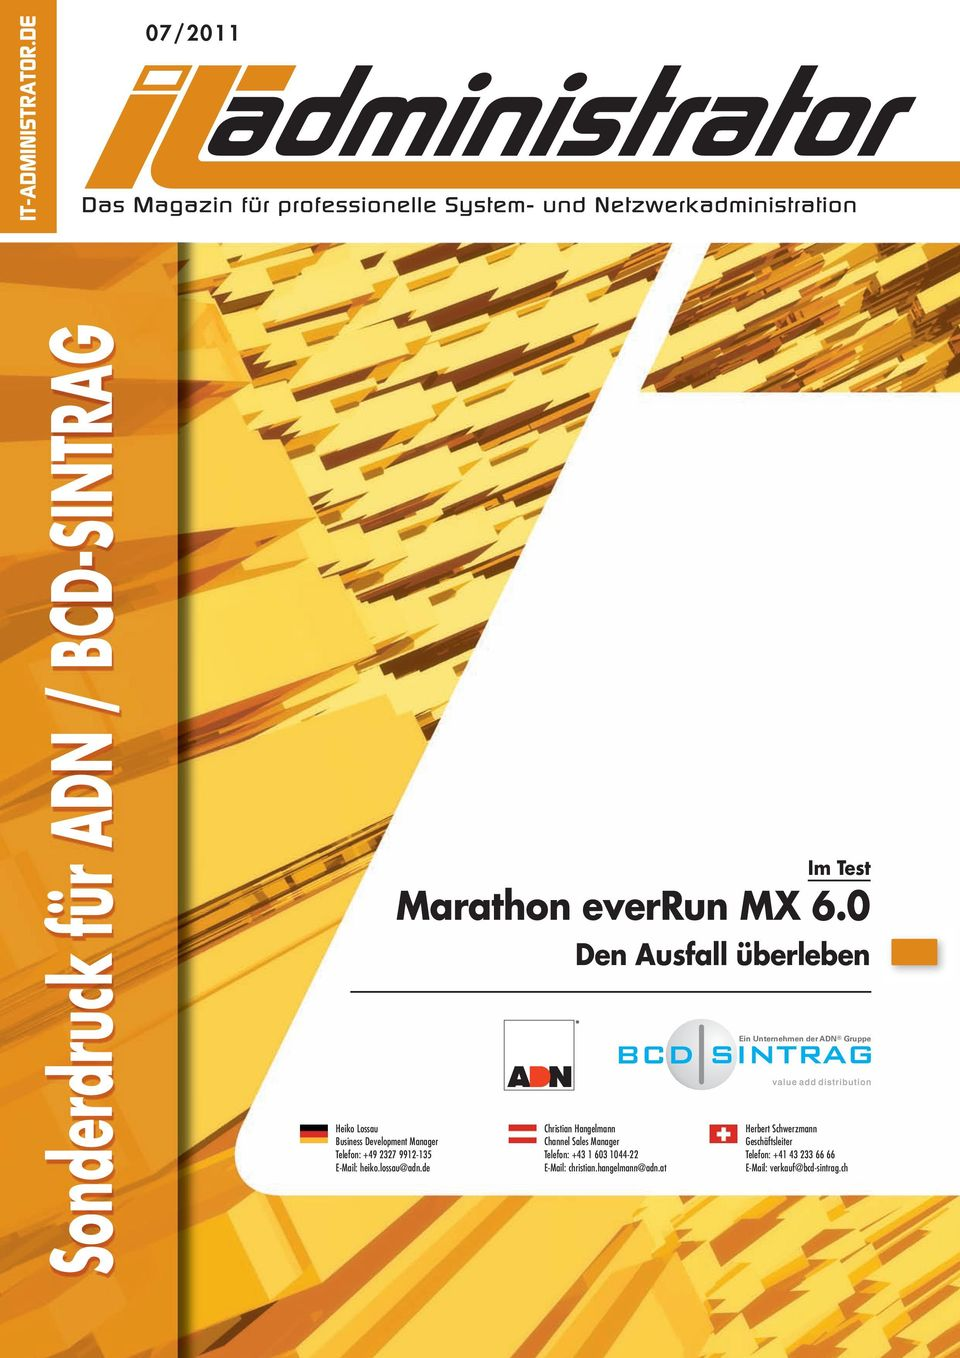 9912-135 E-Mail: heiko.lossau@adn.de Im Test Marathon everrun MX 6.